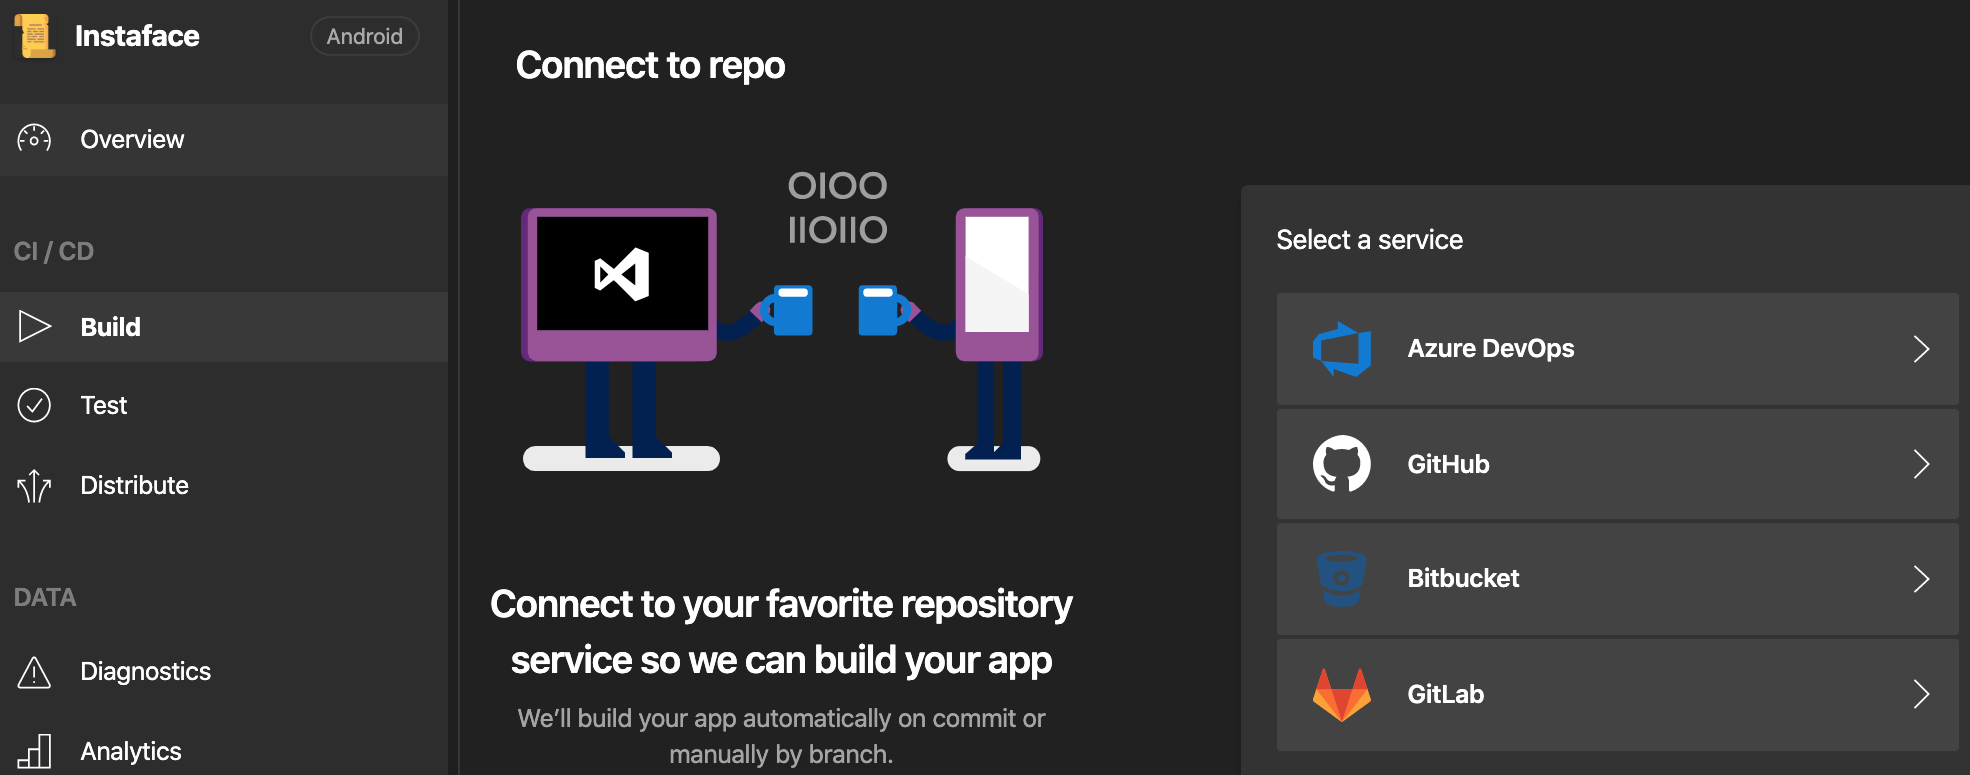 Select Build section on the left menu, then select your repository service